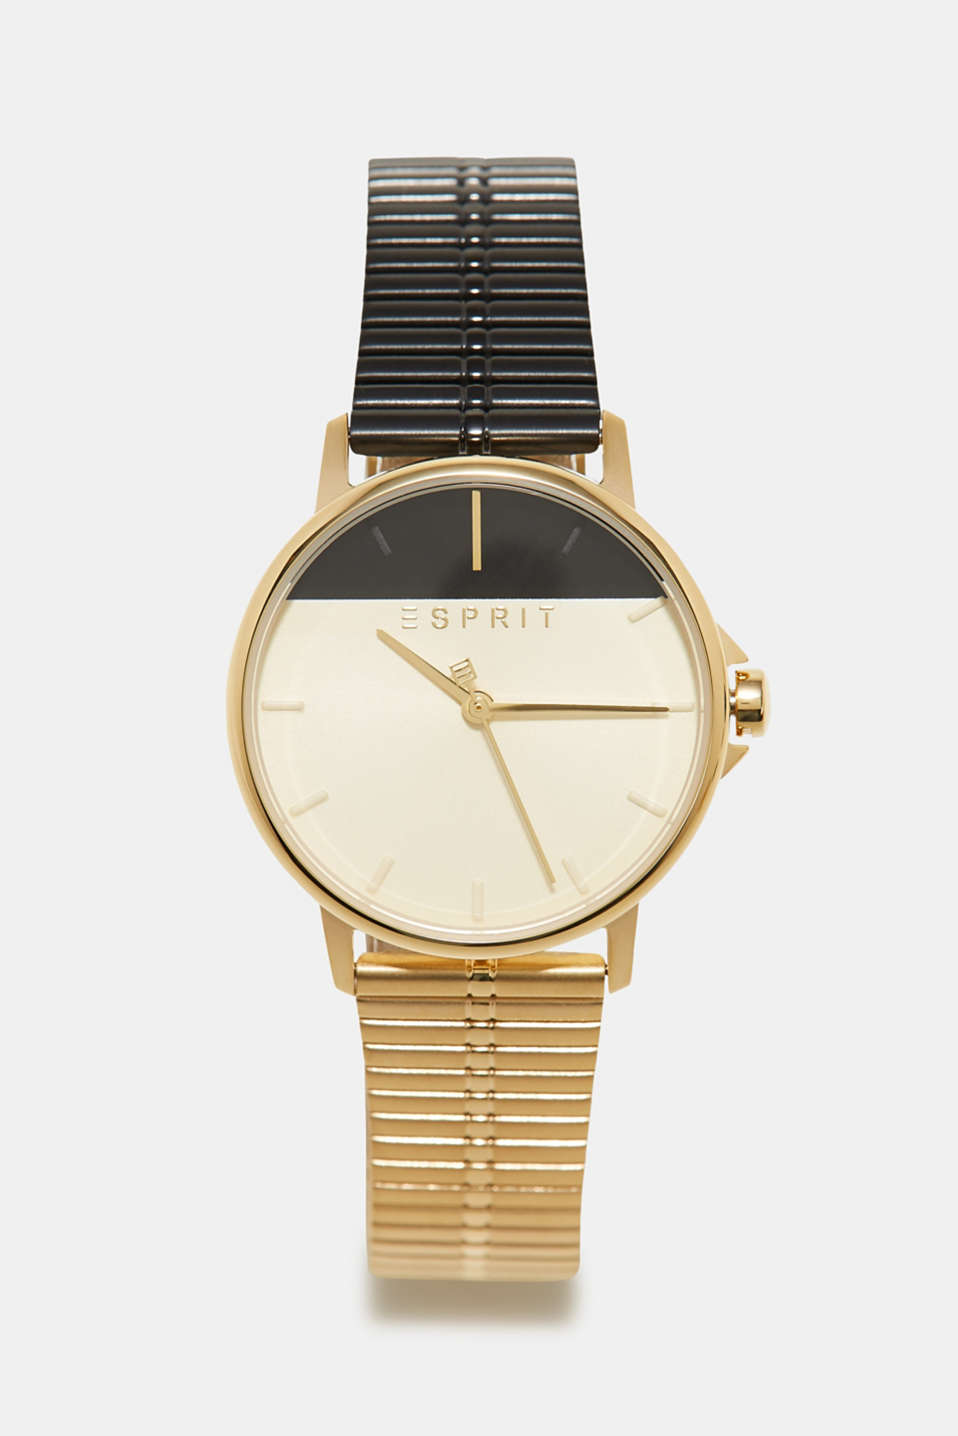 Esprit - Stainless steel watch in a two-tone look